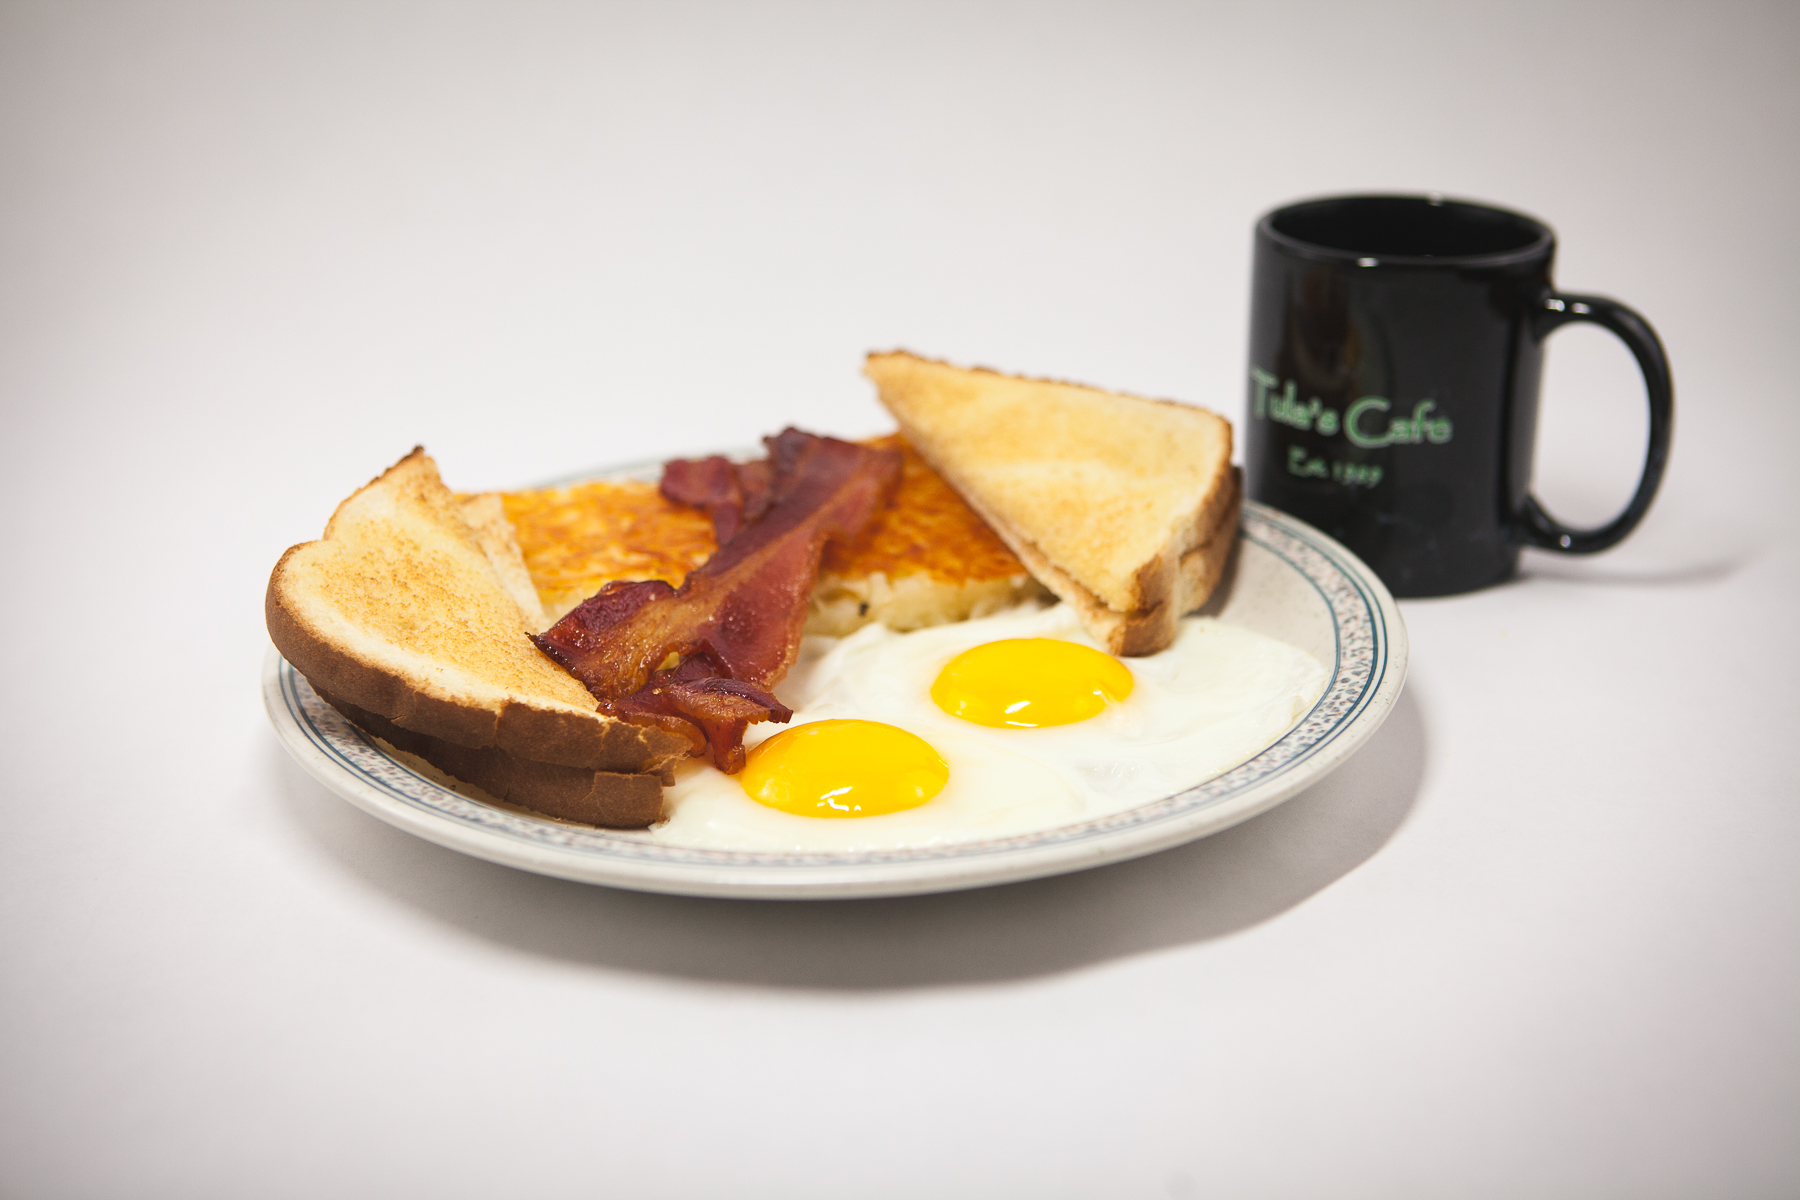 Food Photography for Tula's Northwoods Cafe - 2 eggs bacon classic breakfast